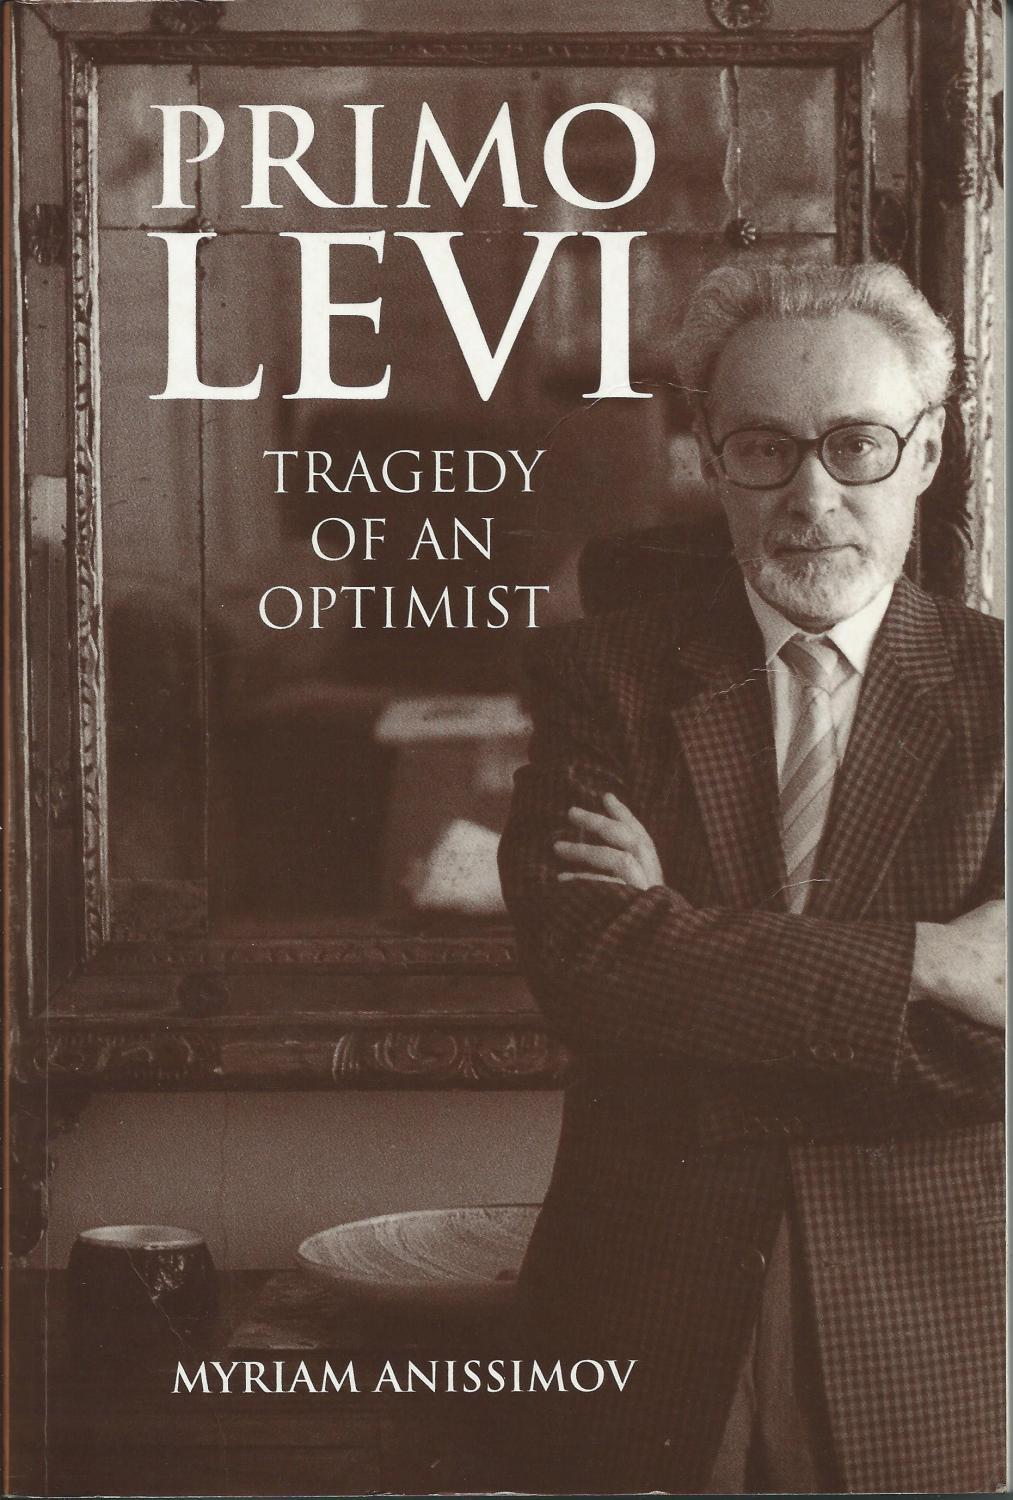 biography of primo levi vanadium Biography primo levi's the periodic table is a collection of short stories that elegantly while 'vanadium' describes an eerie post-war.